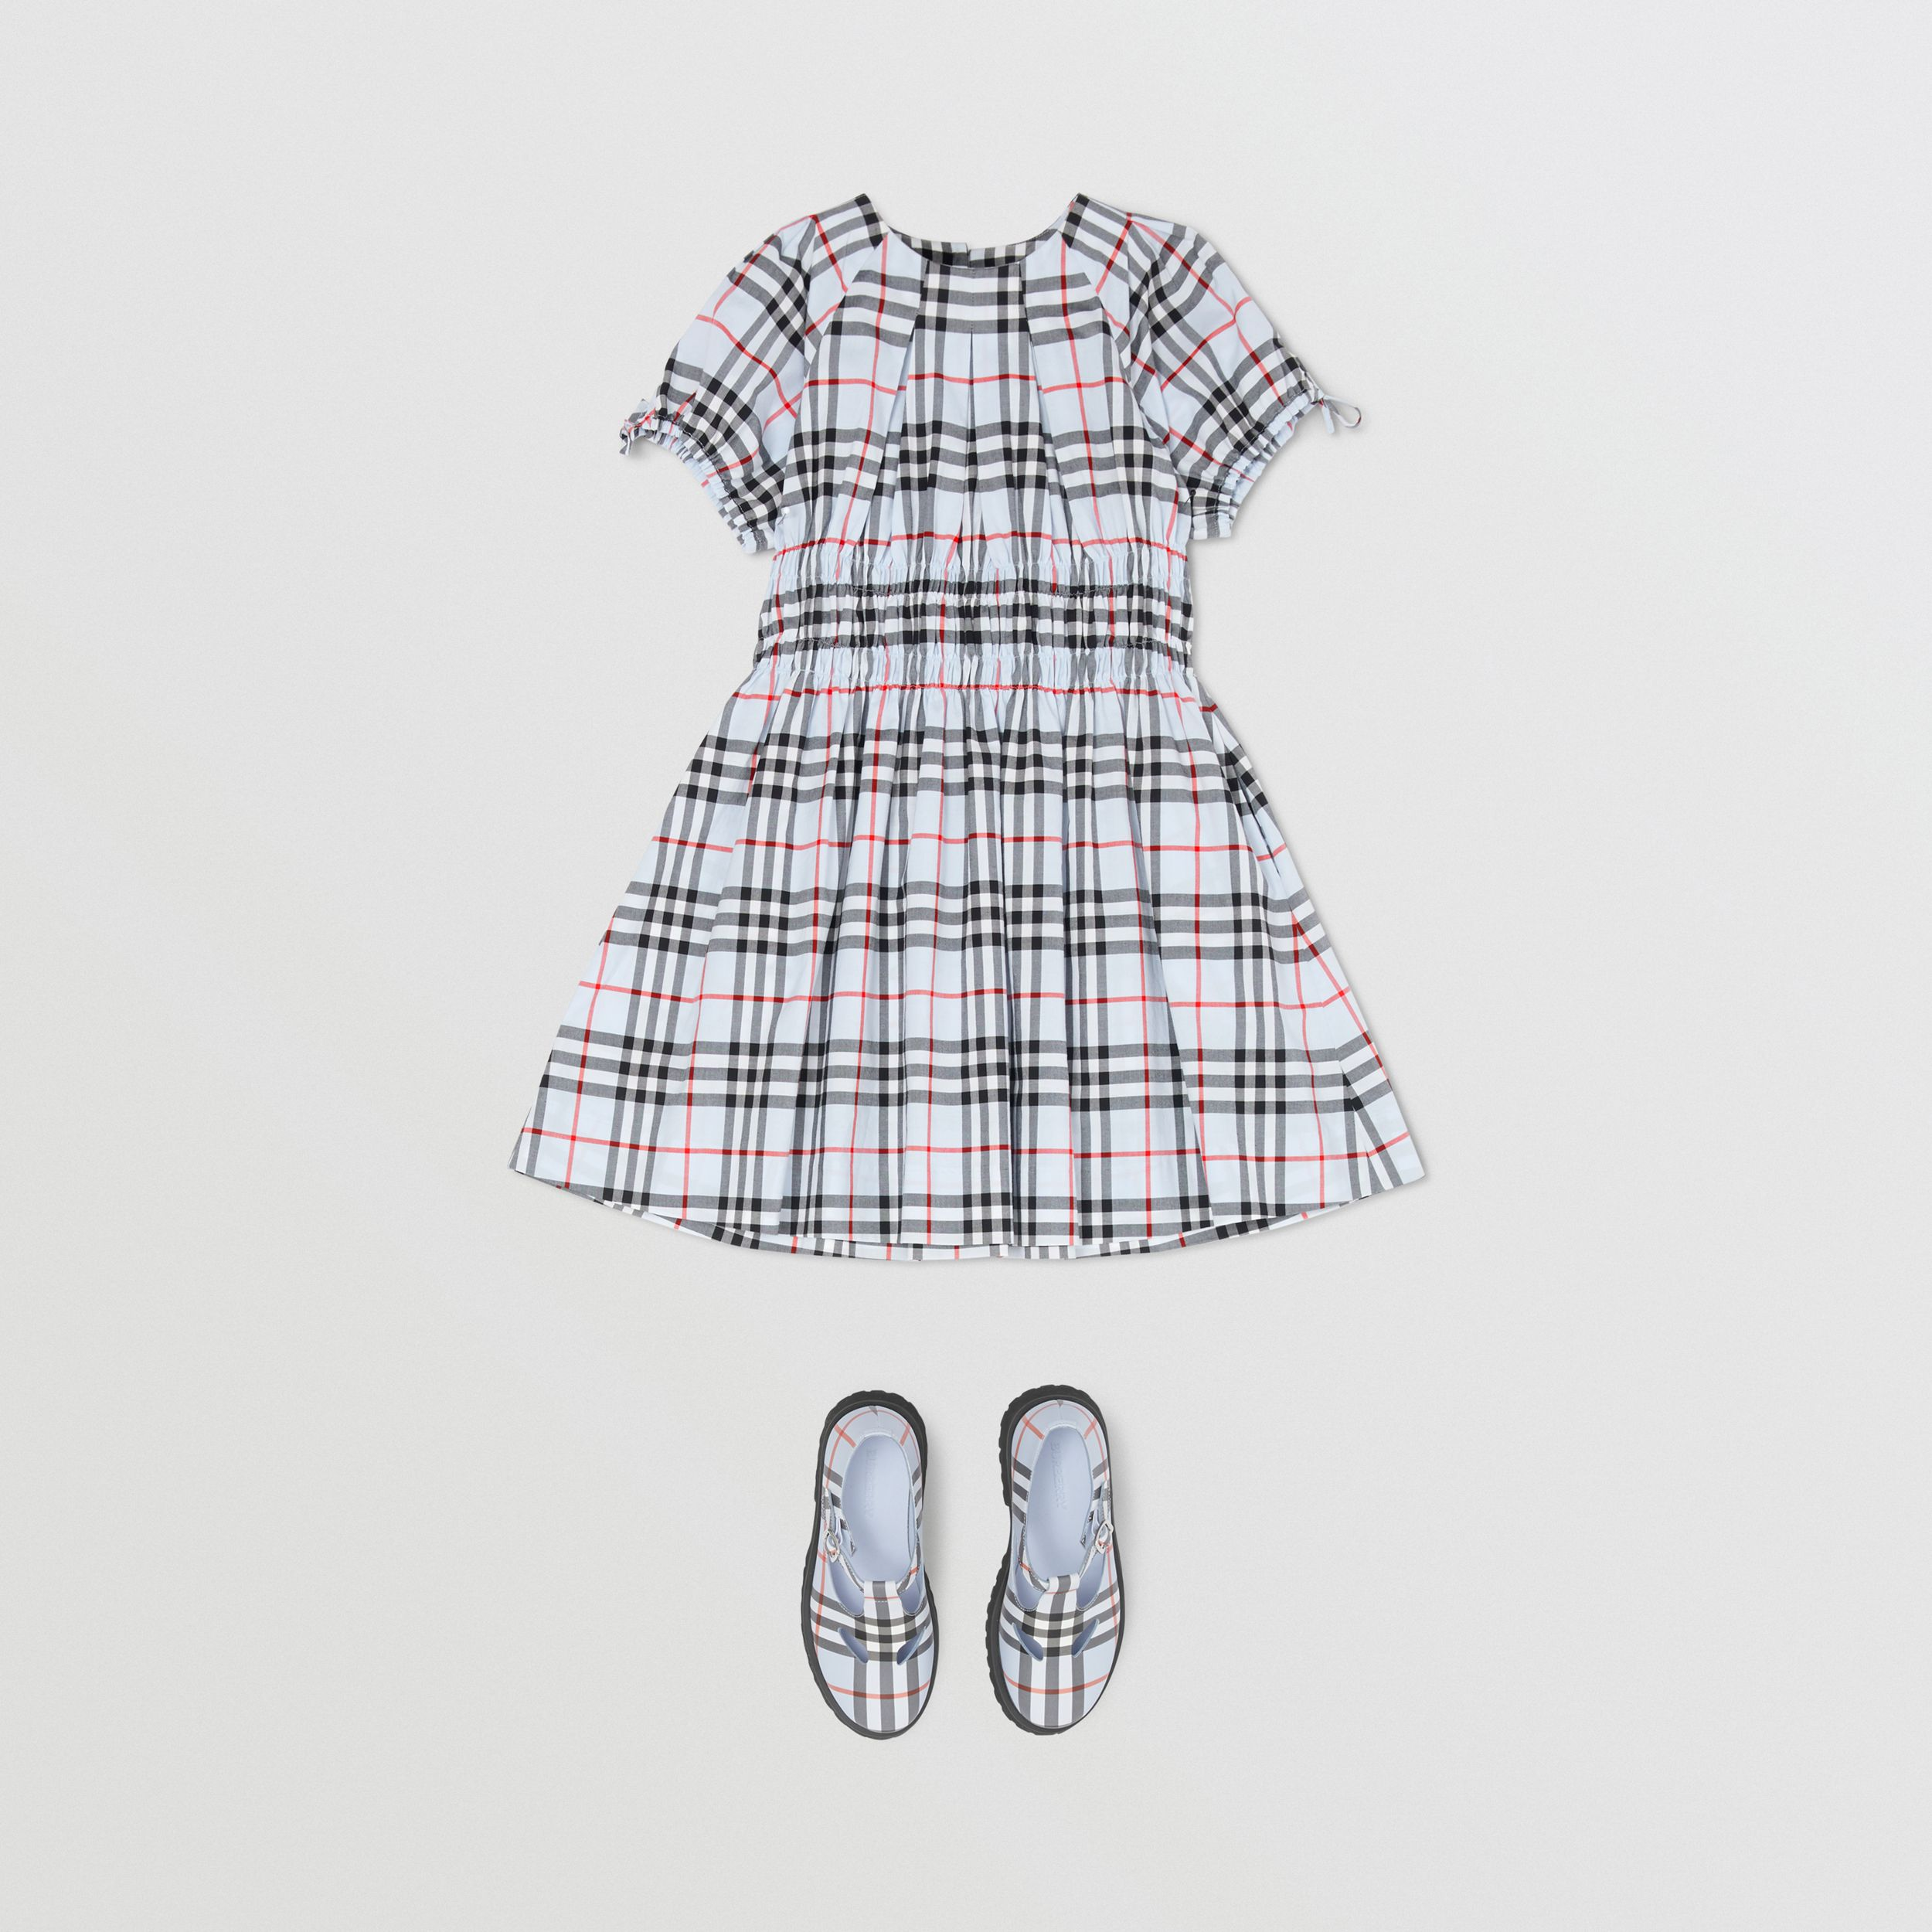 Ruched Panel Vintage Check Cotton Dress in Pale Blue | Burberry Australia - 3